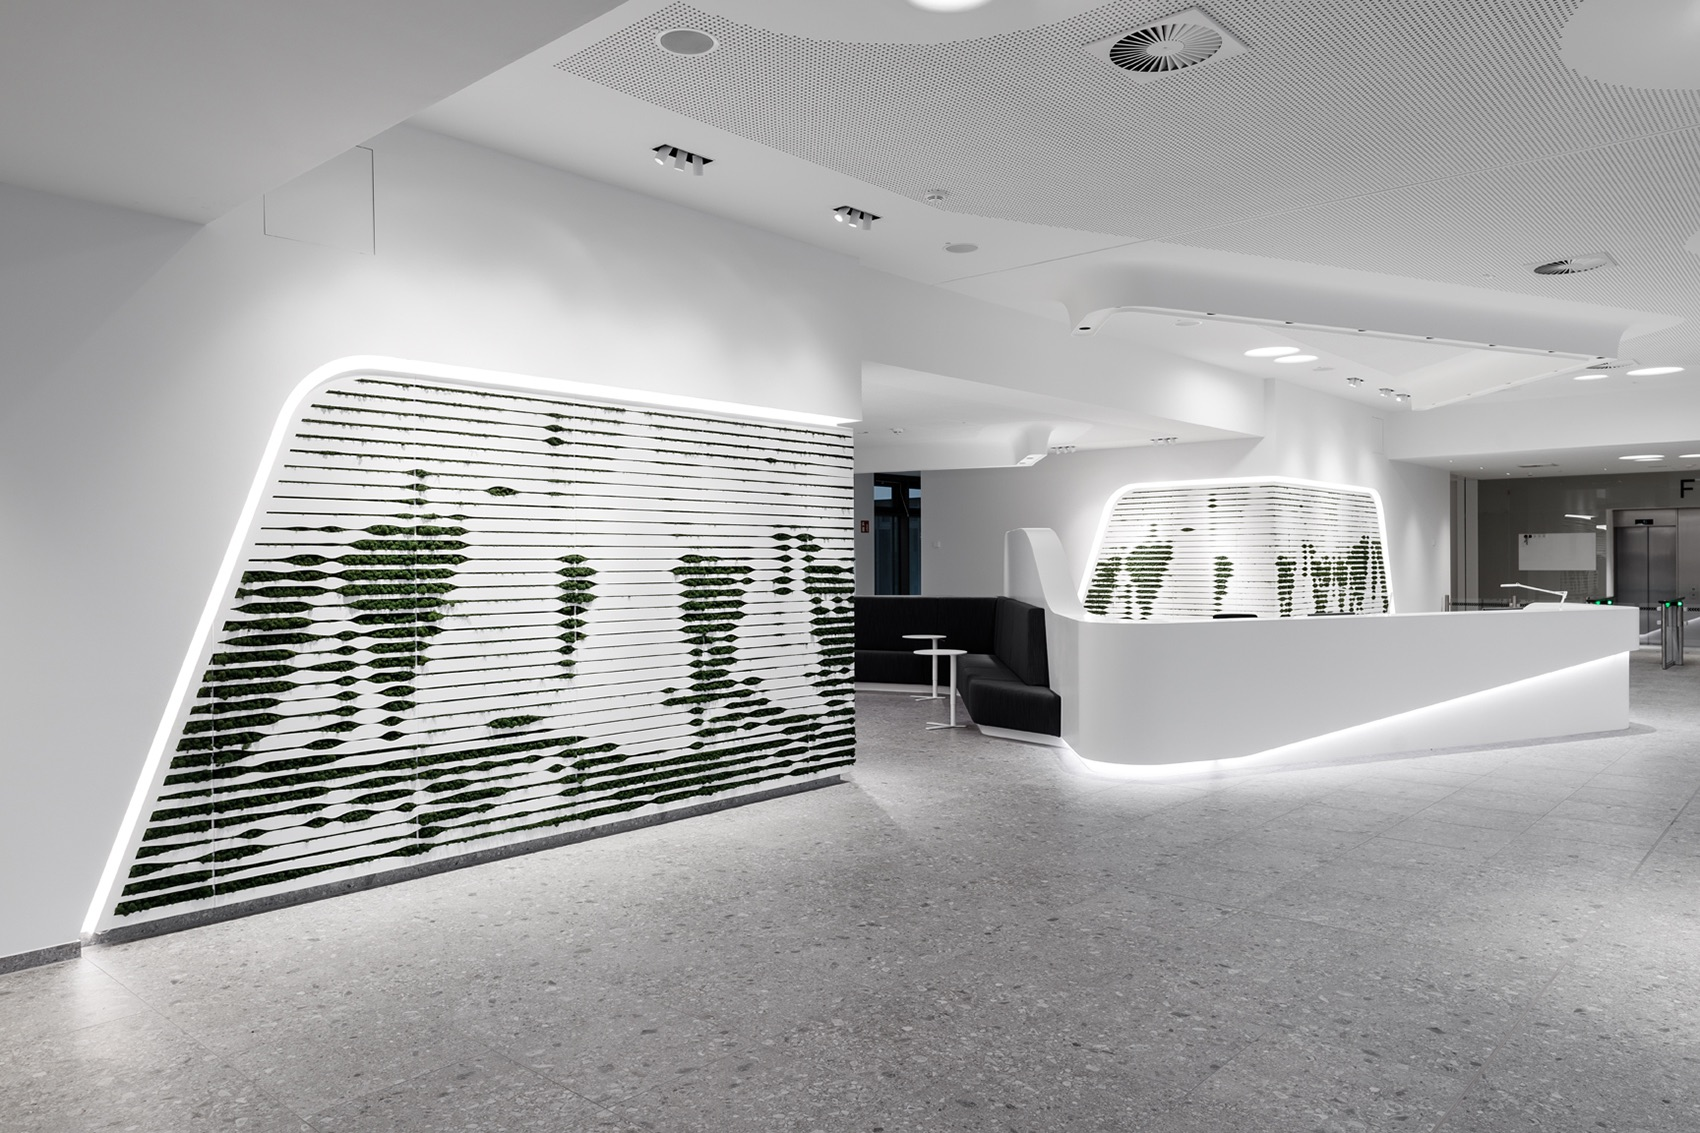 A Tour of Euler Hermes' Biophilic Hamburg Office